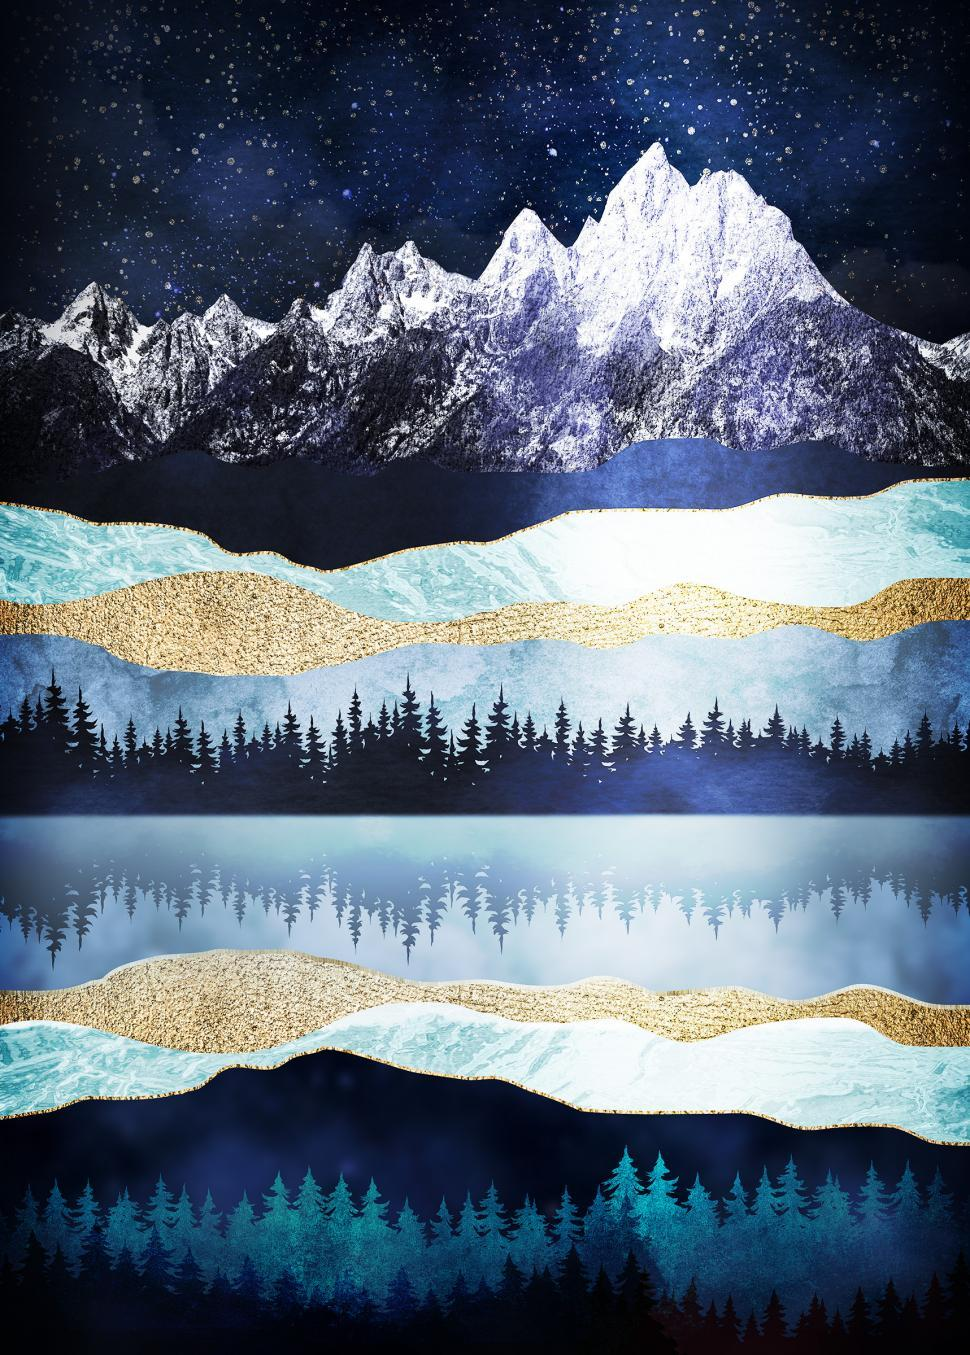 Download Free Stock Photo of Grand Teton National Park - Abstract Texturized Design